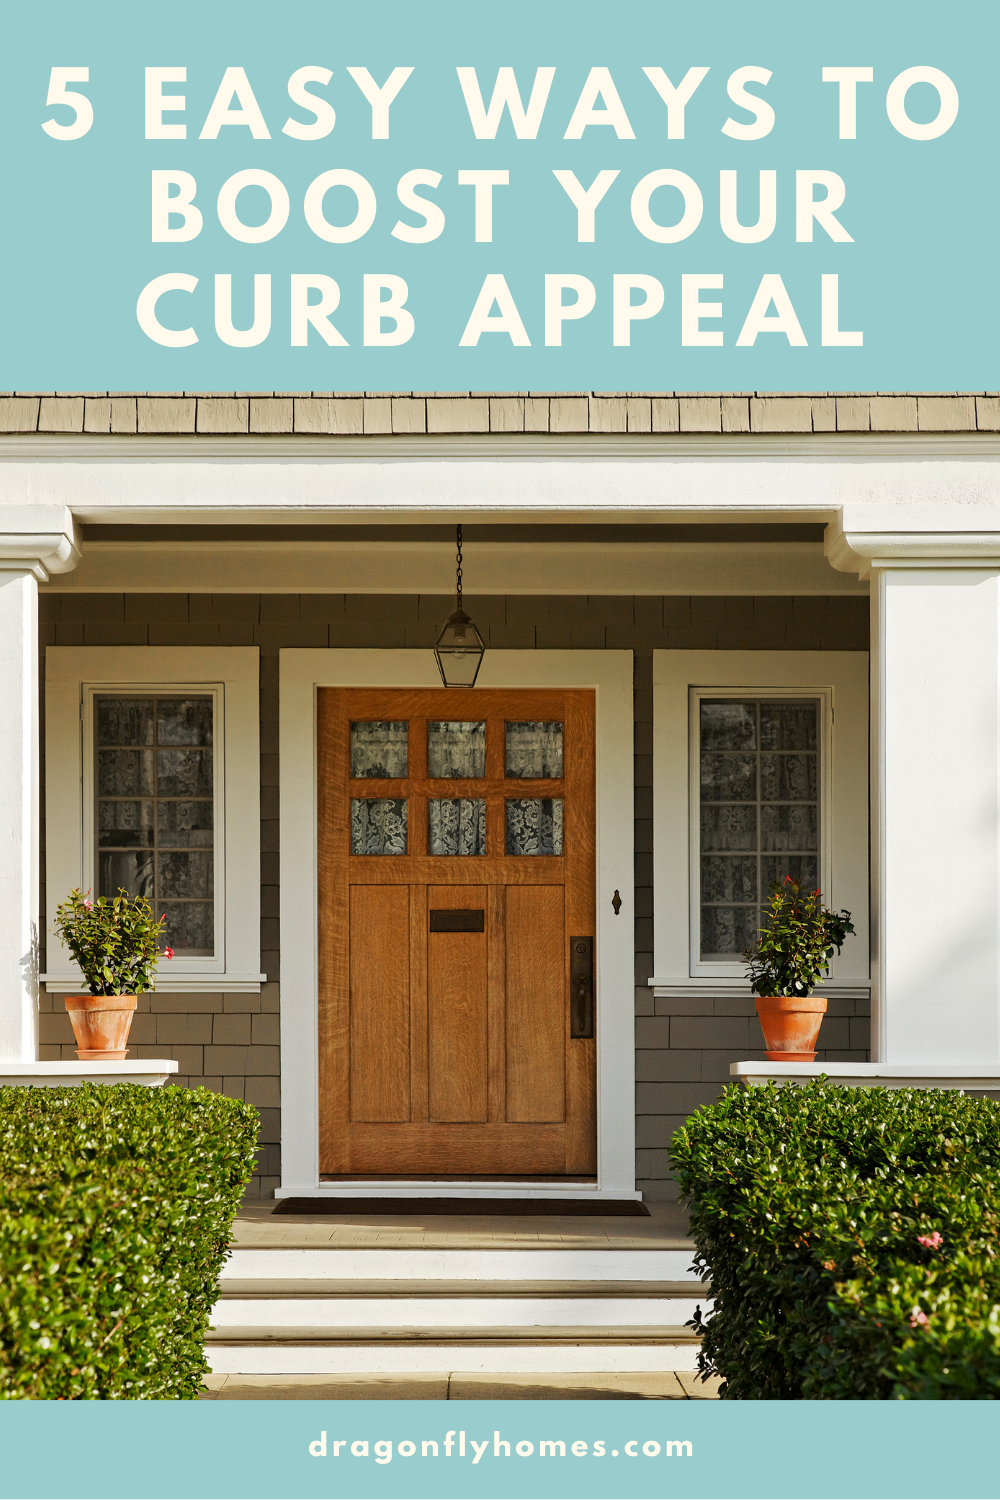 5 easy ways to boost your curb appeal